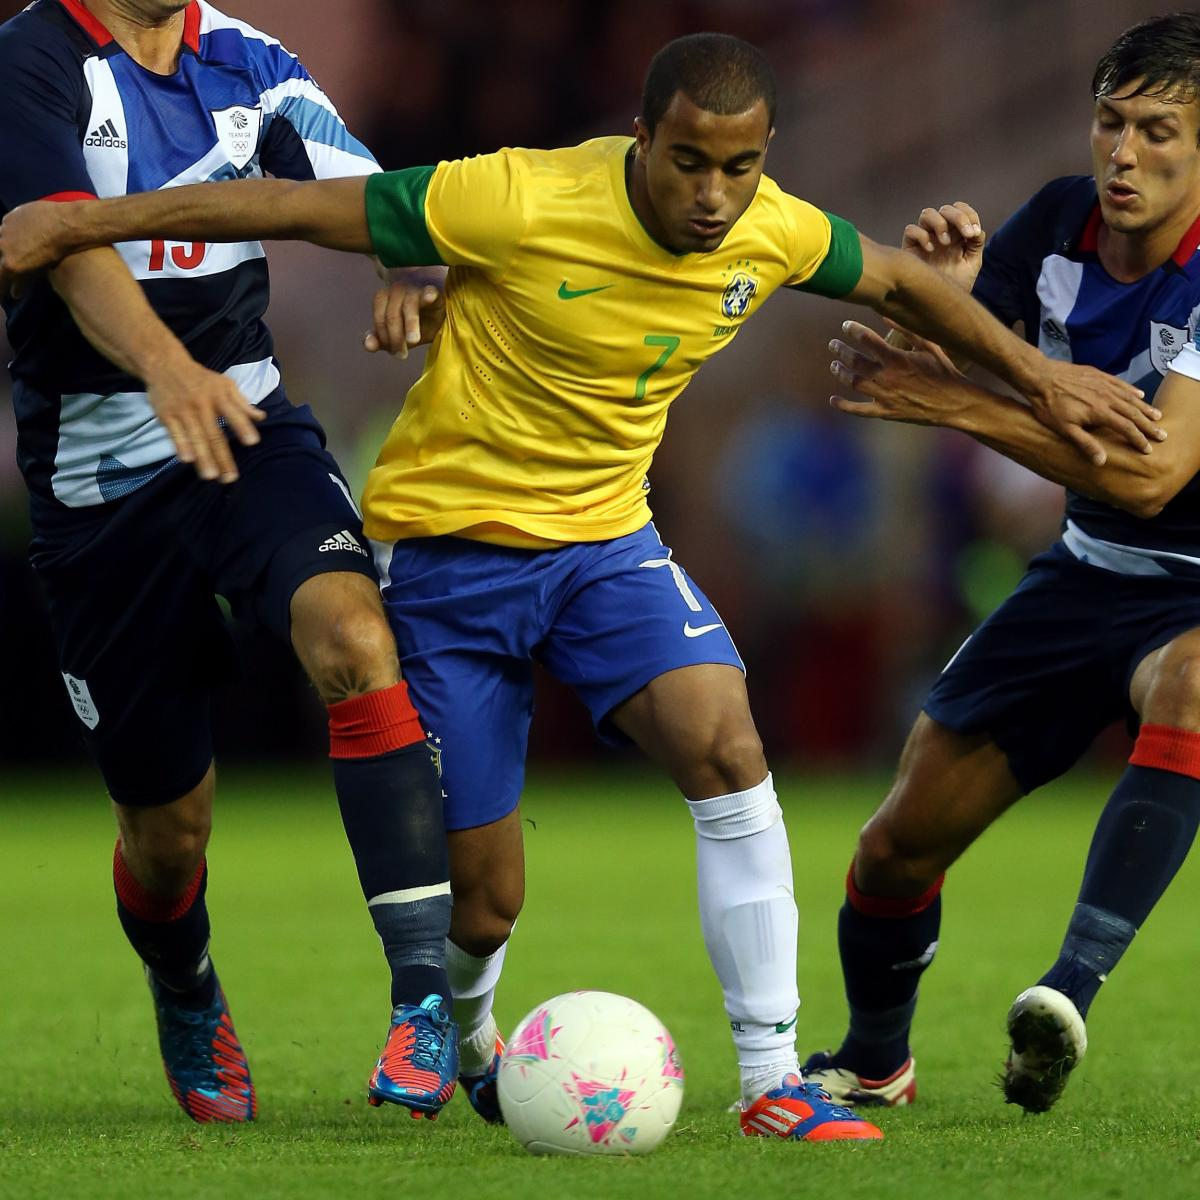 FIFA World Rankings Place Brazil 18th, Reinforce Flawed